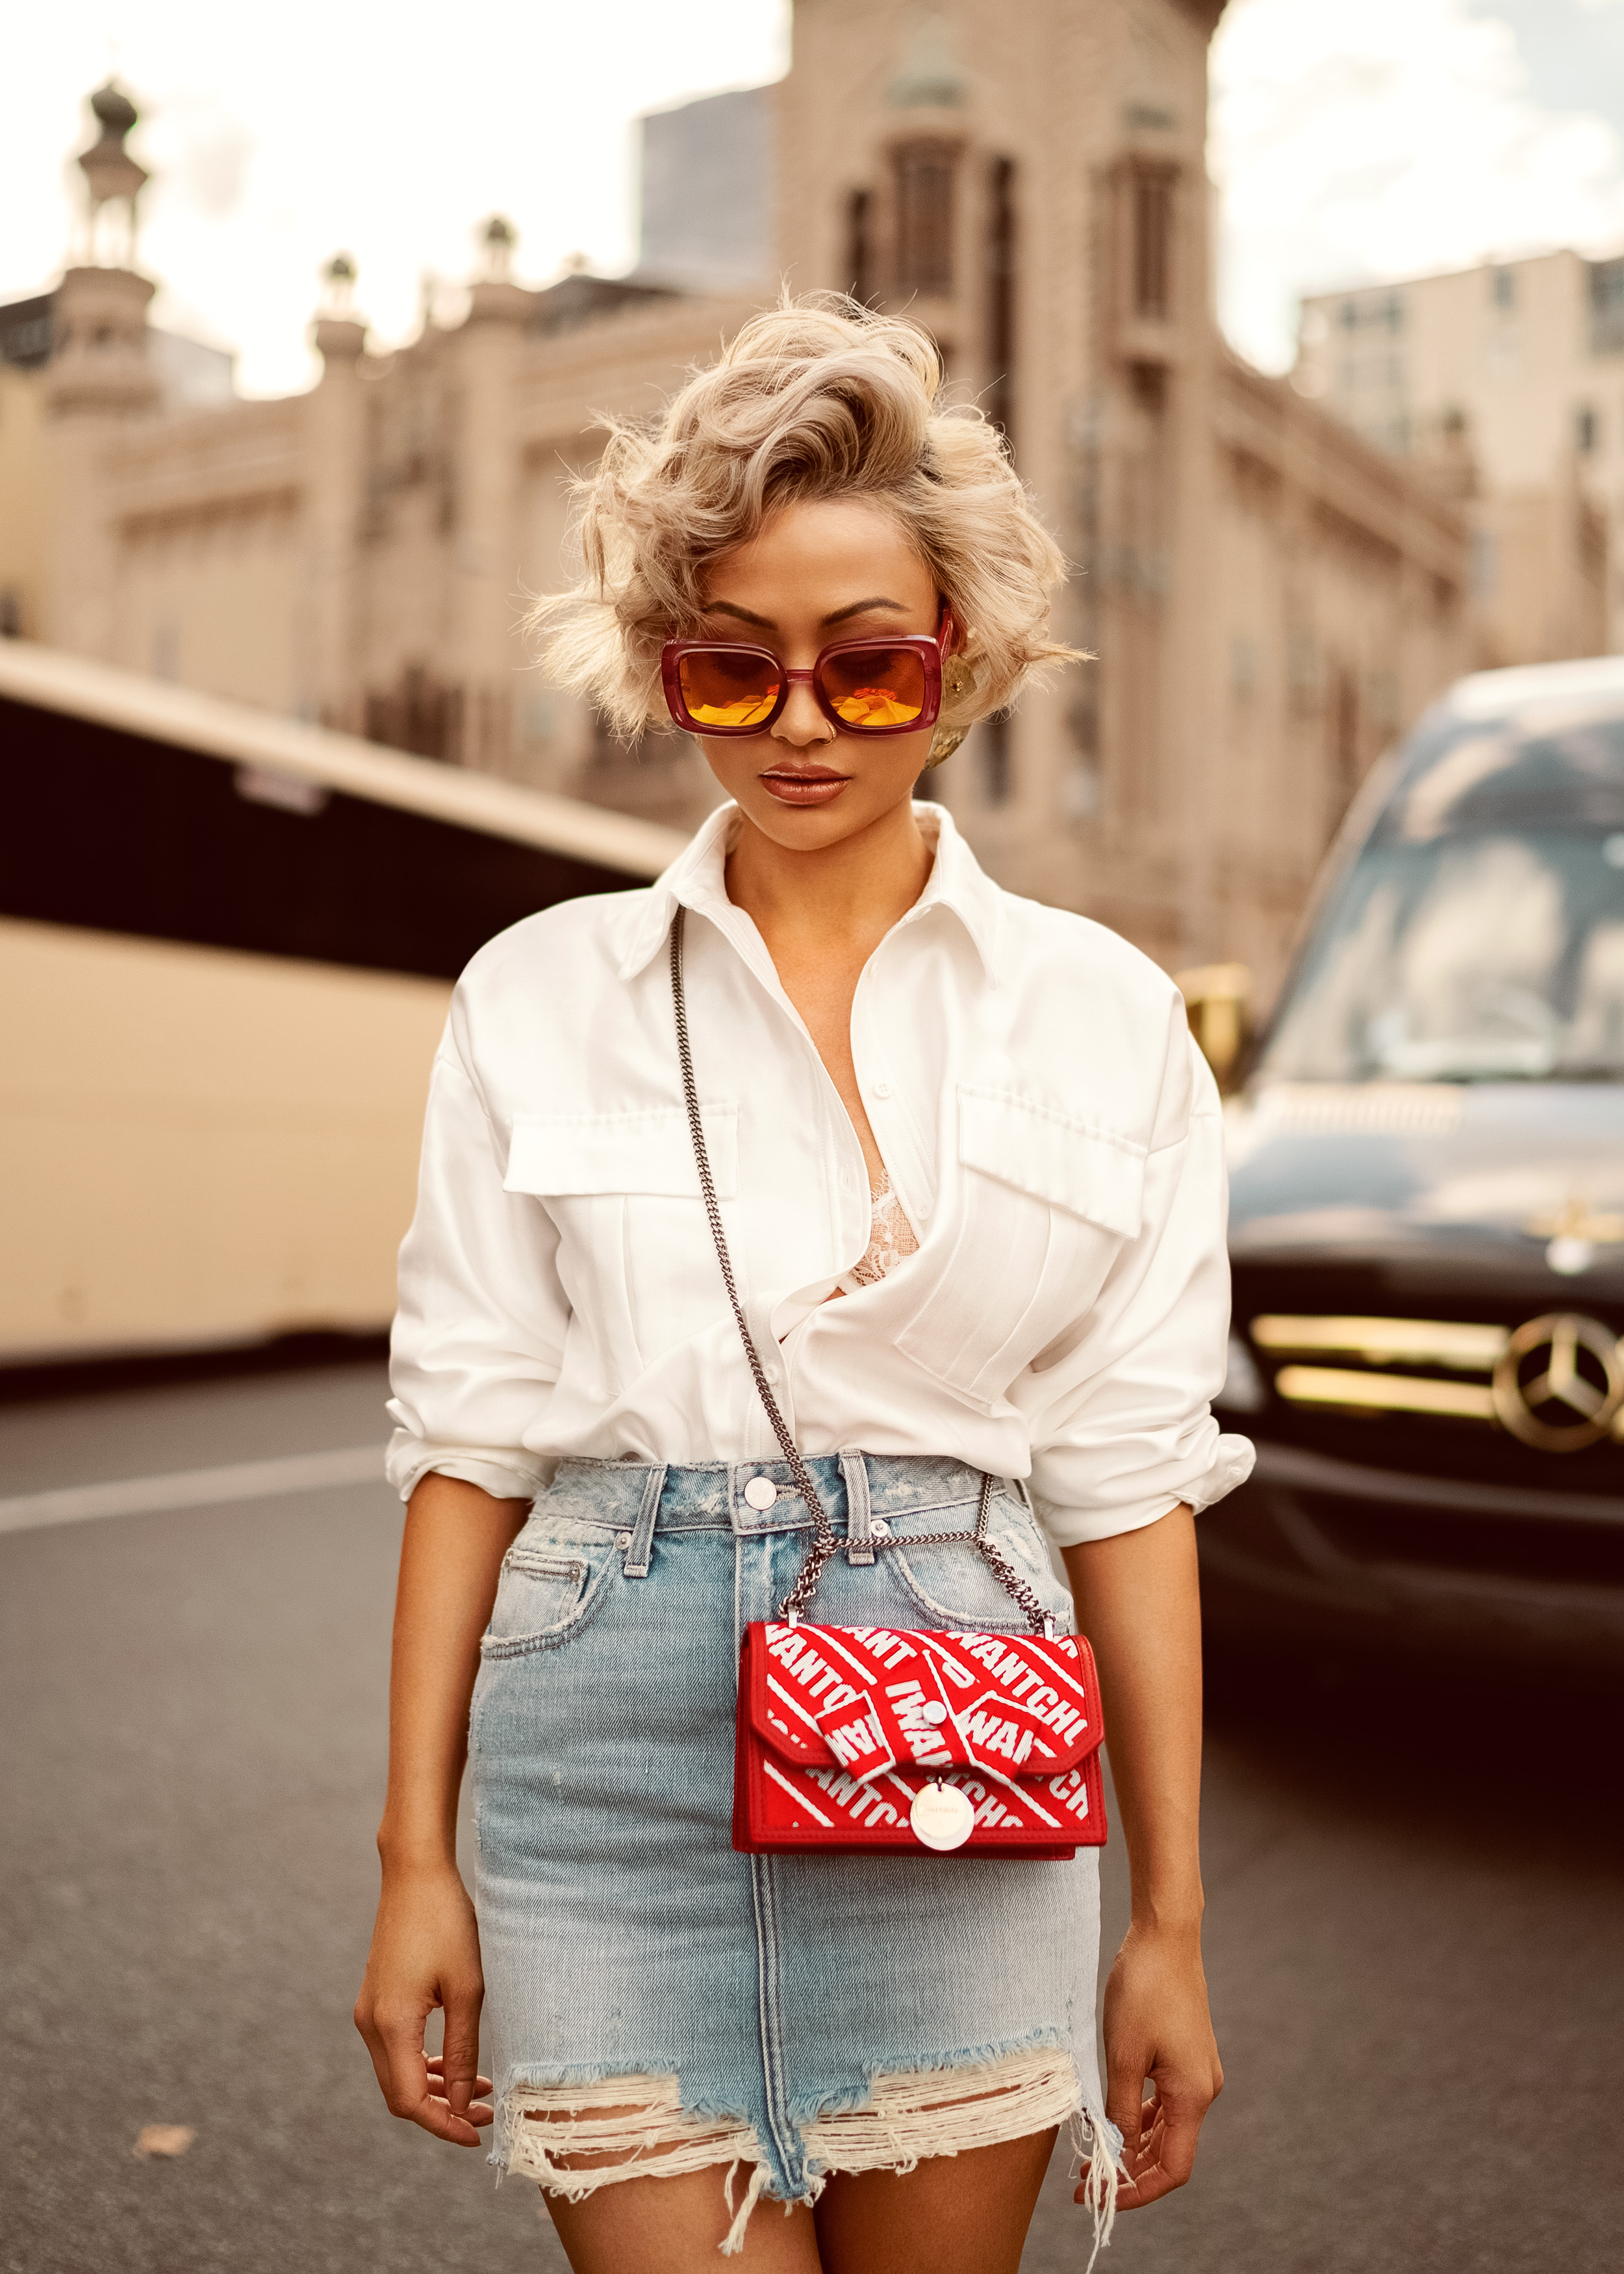 Micah-Gianneli-Australian-Melbourne-Fashion-Blogger-Influencer-Photography-Street-Style-Vogue-Editorial-Luxury-Jimmy-Choo-Campaign